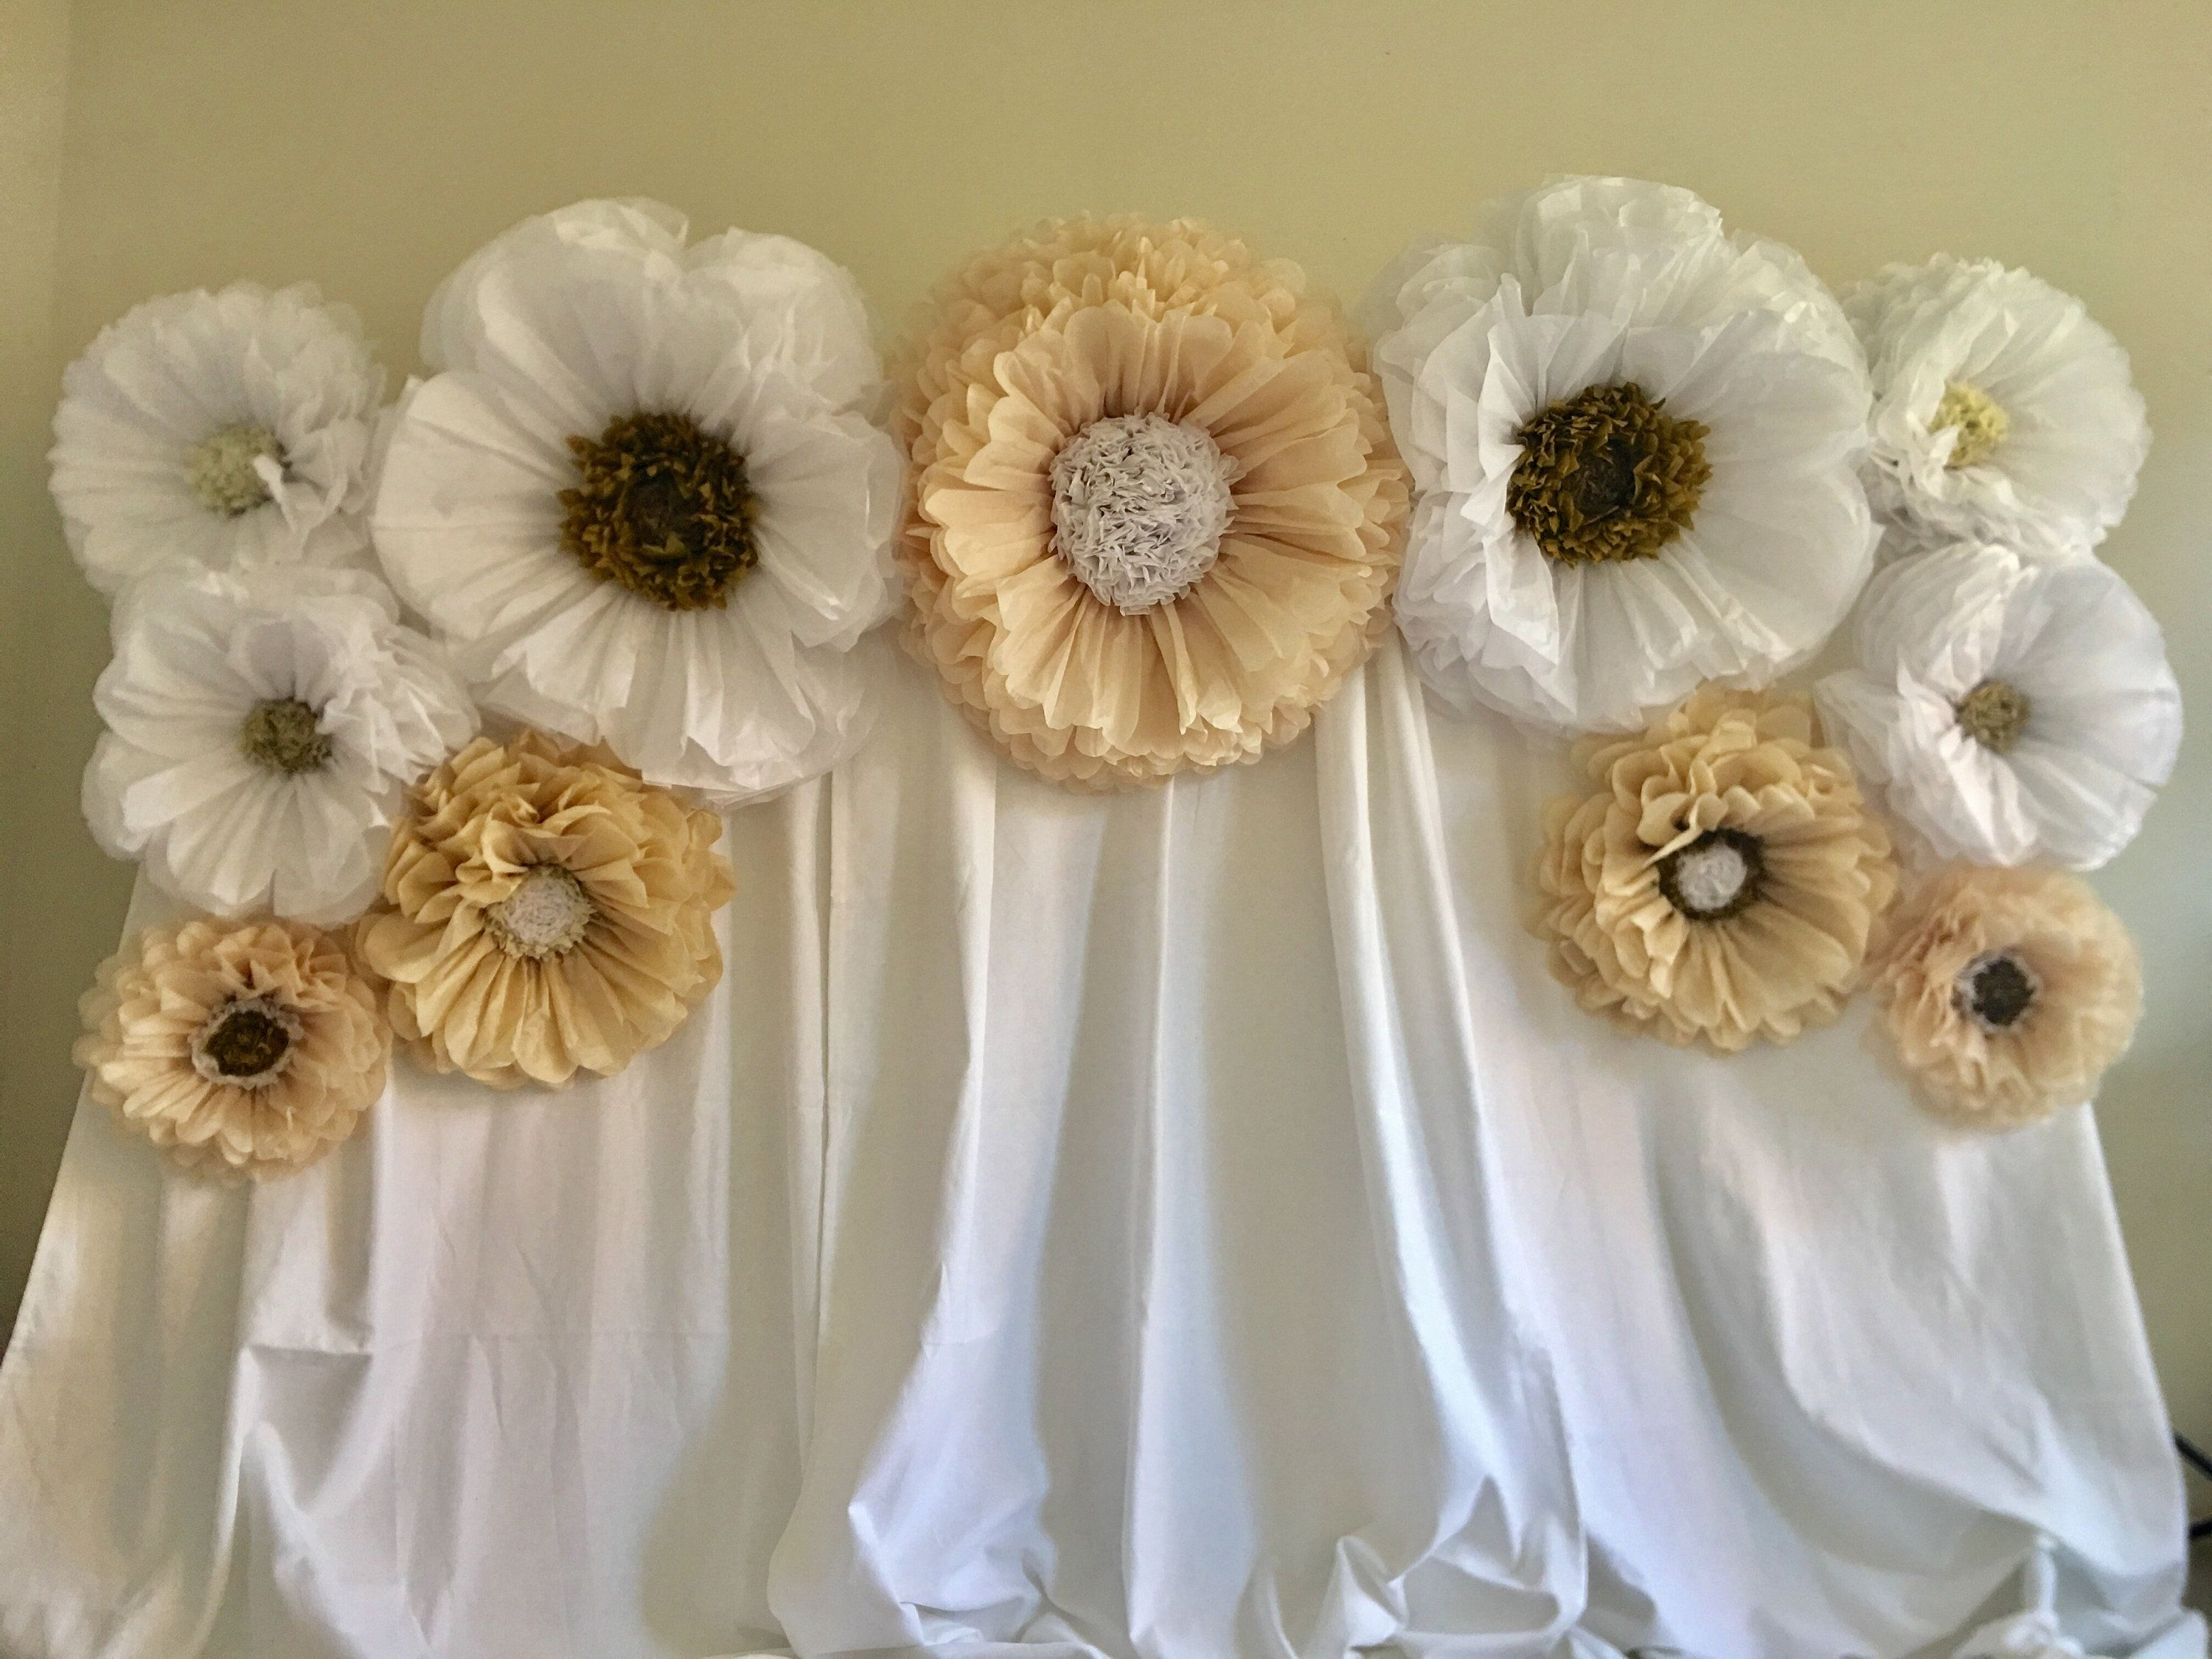 Champagne And White Paper Flower Backdrop Perfect For Weddings Corporate Events And Event Decor In 2020 Paper Flower Backdrop Wedding Paper Flower Backdrop Flower Backdrop